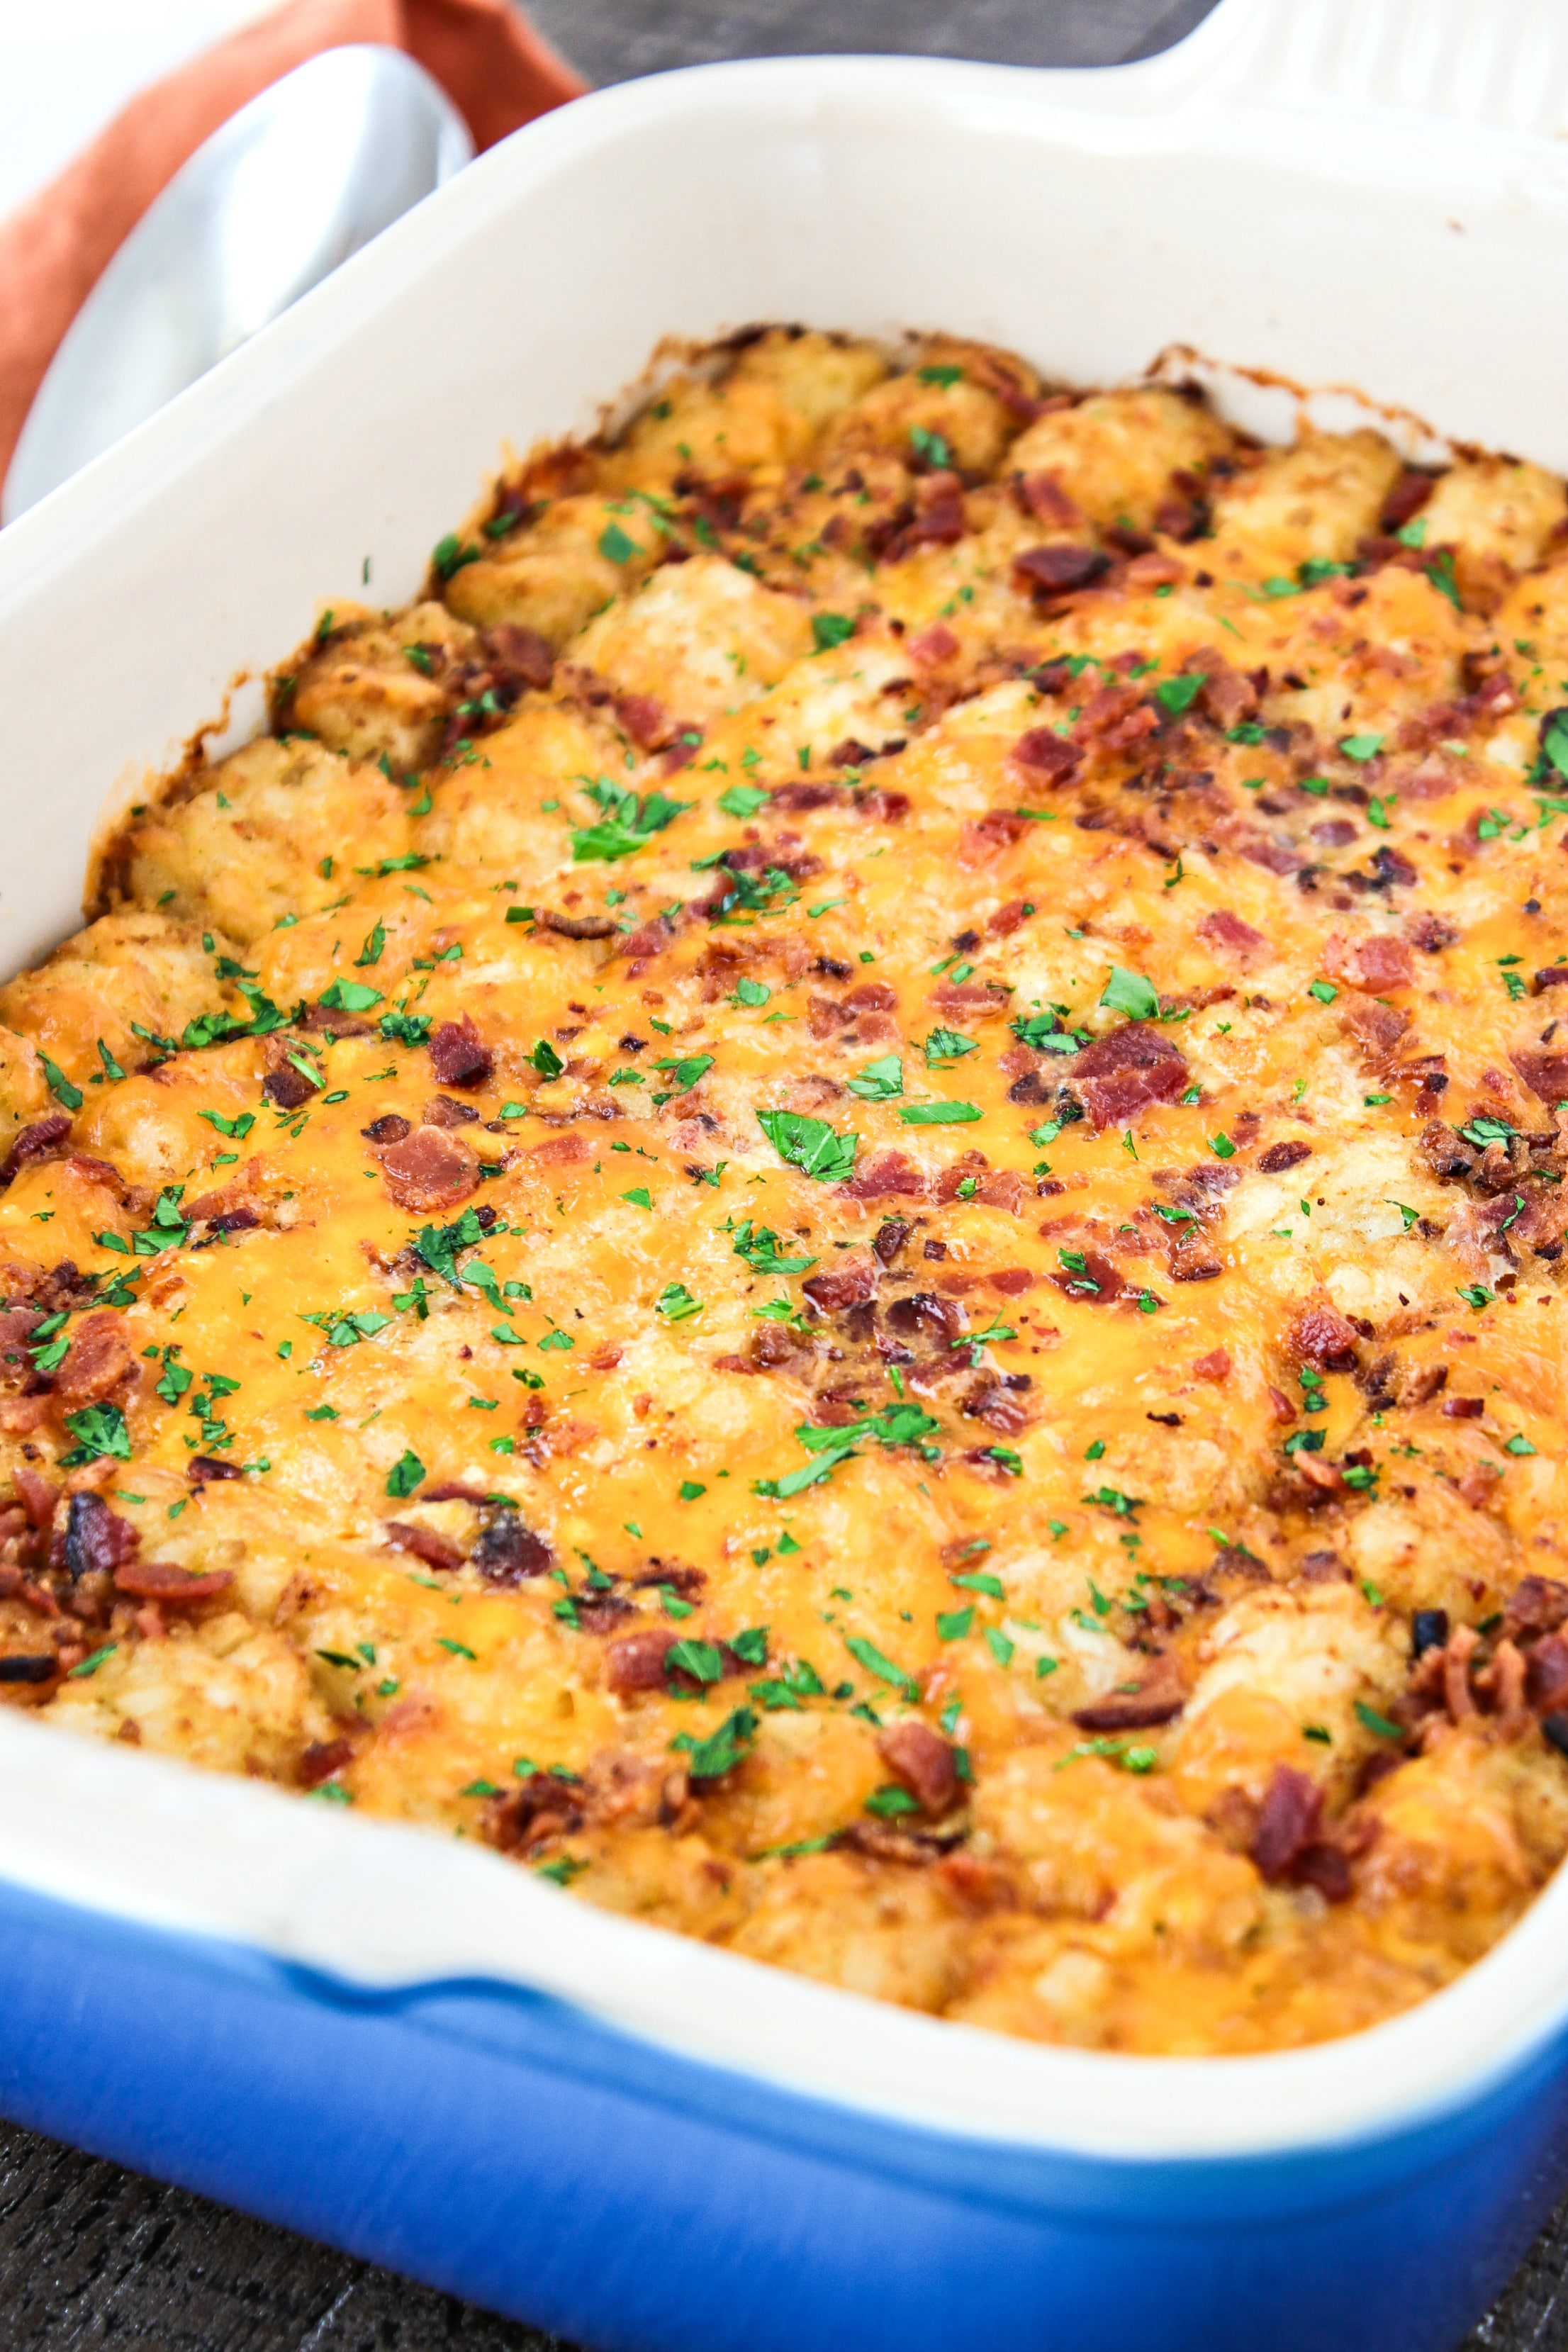 Cheesy Tater Tot Breakfast Casserole A That Incorporates All Of Your Favorite